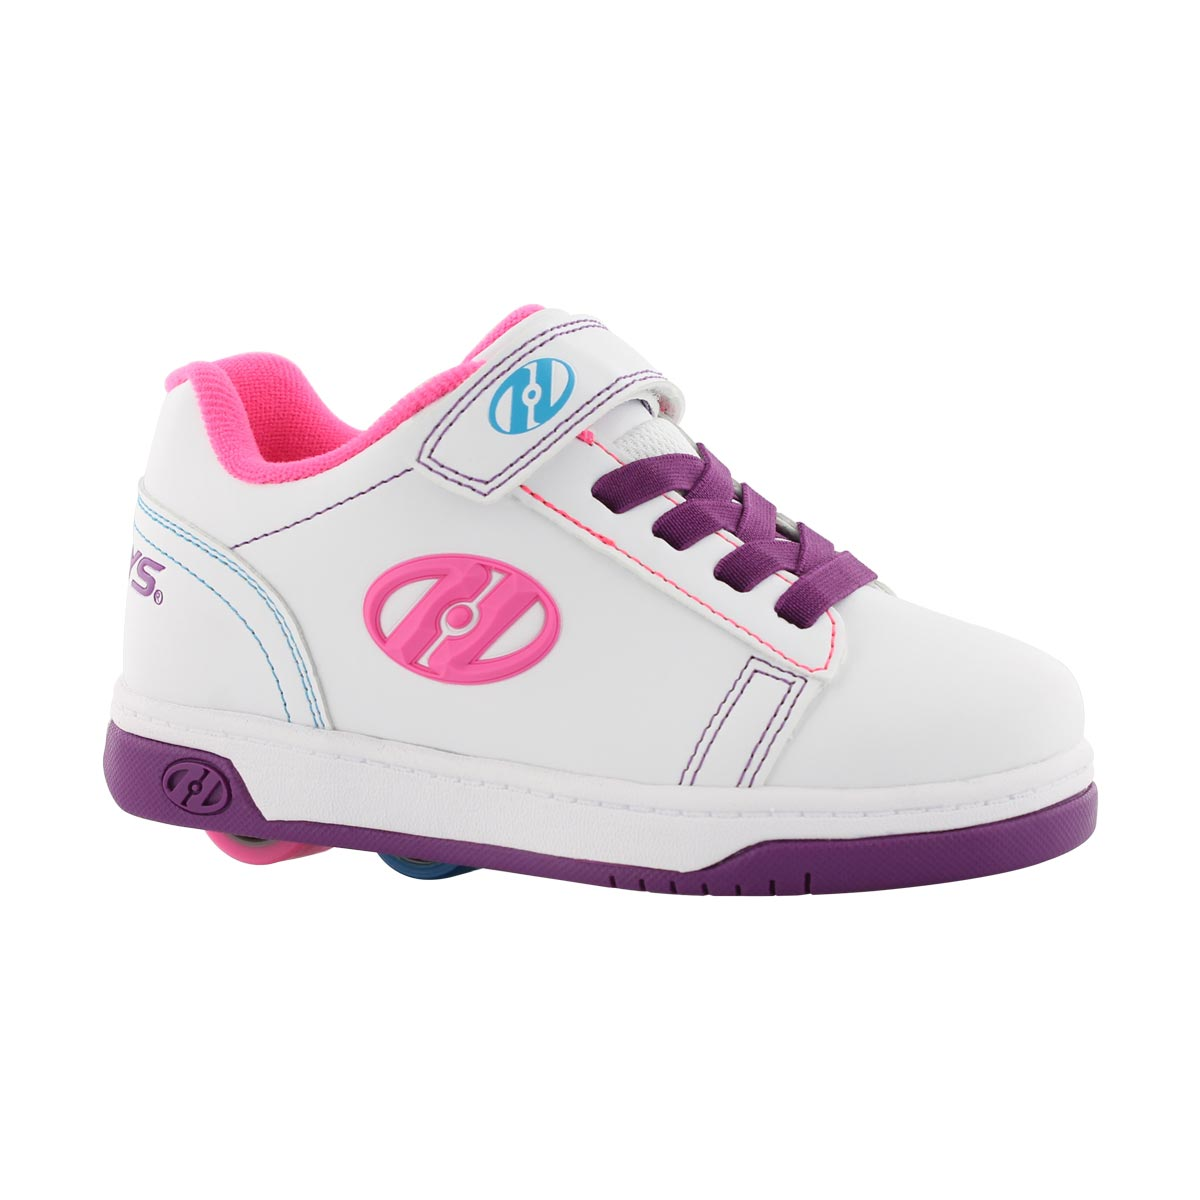 Girls' DUAL UP X2 wht/ppl/pk skate sneakers